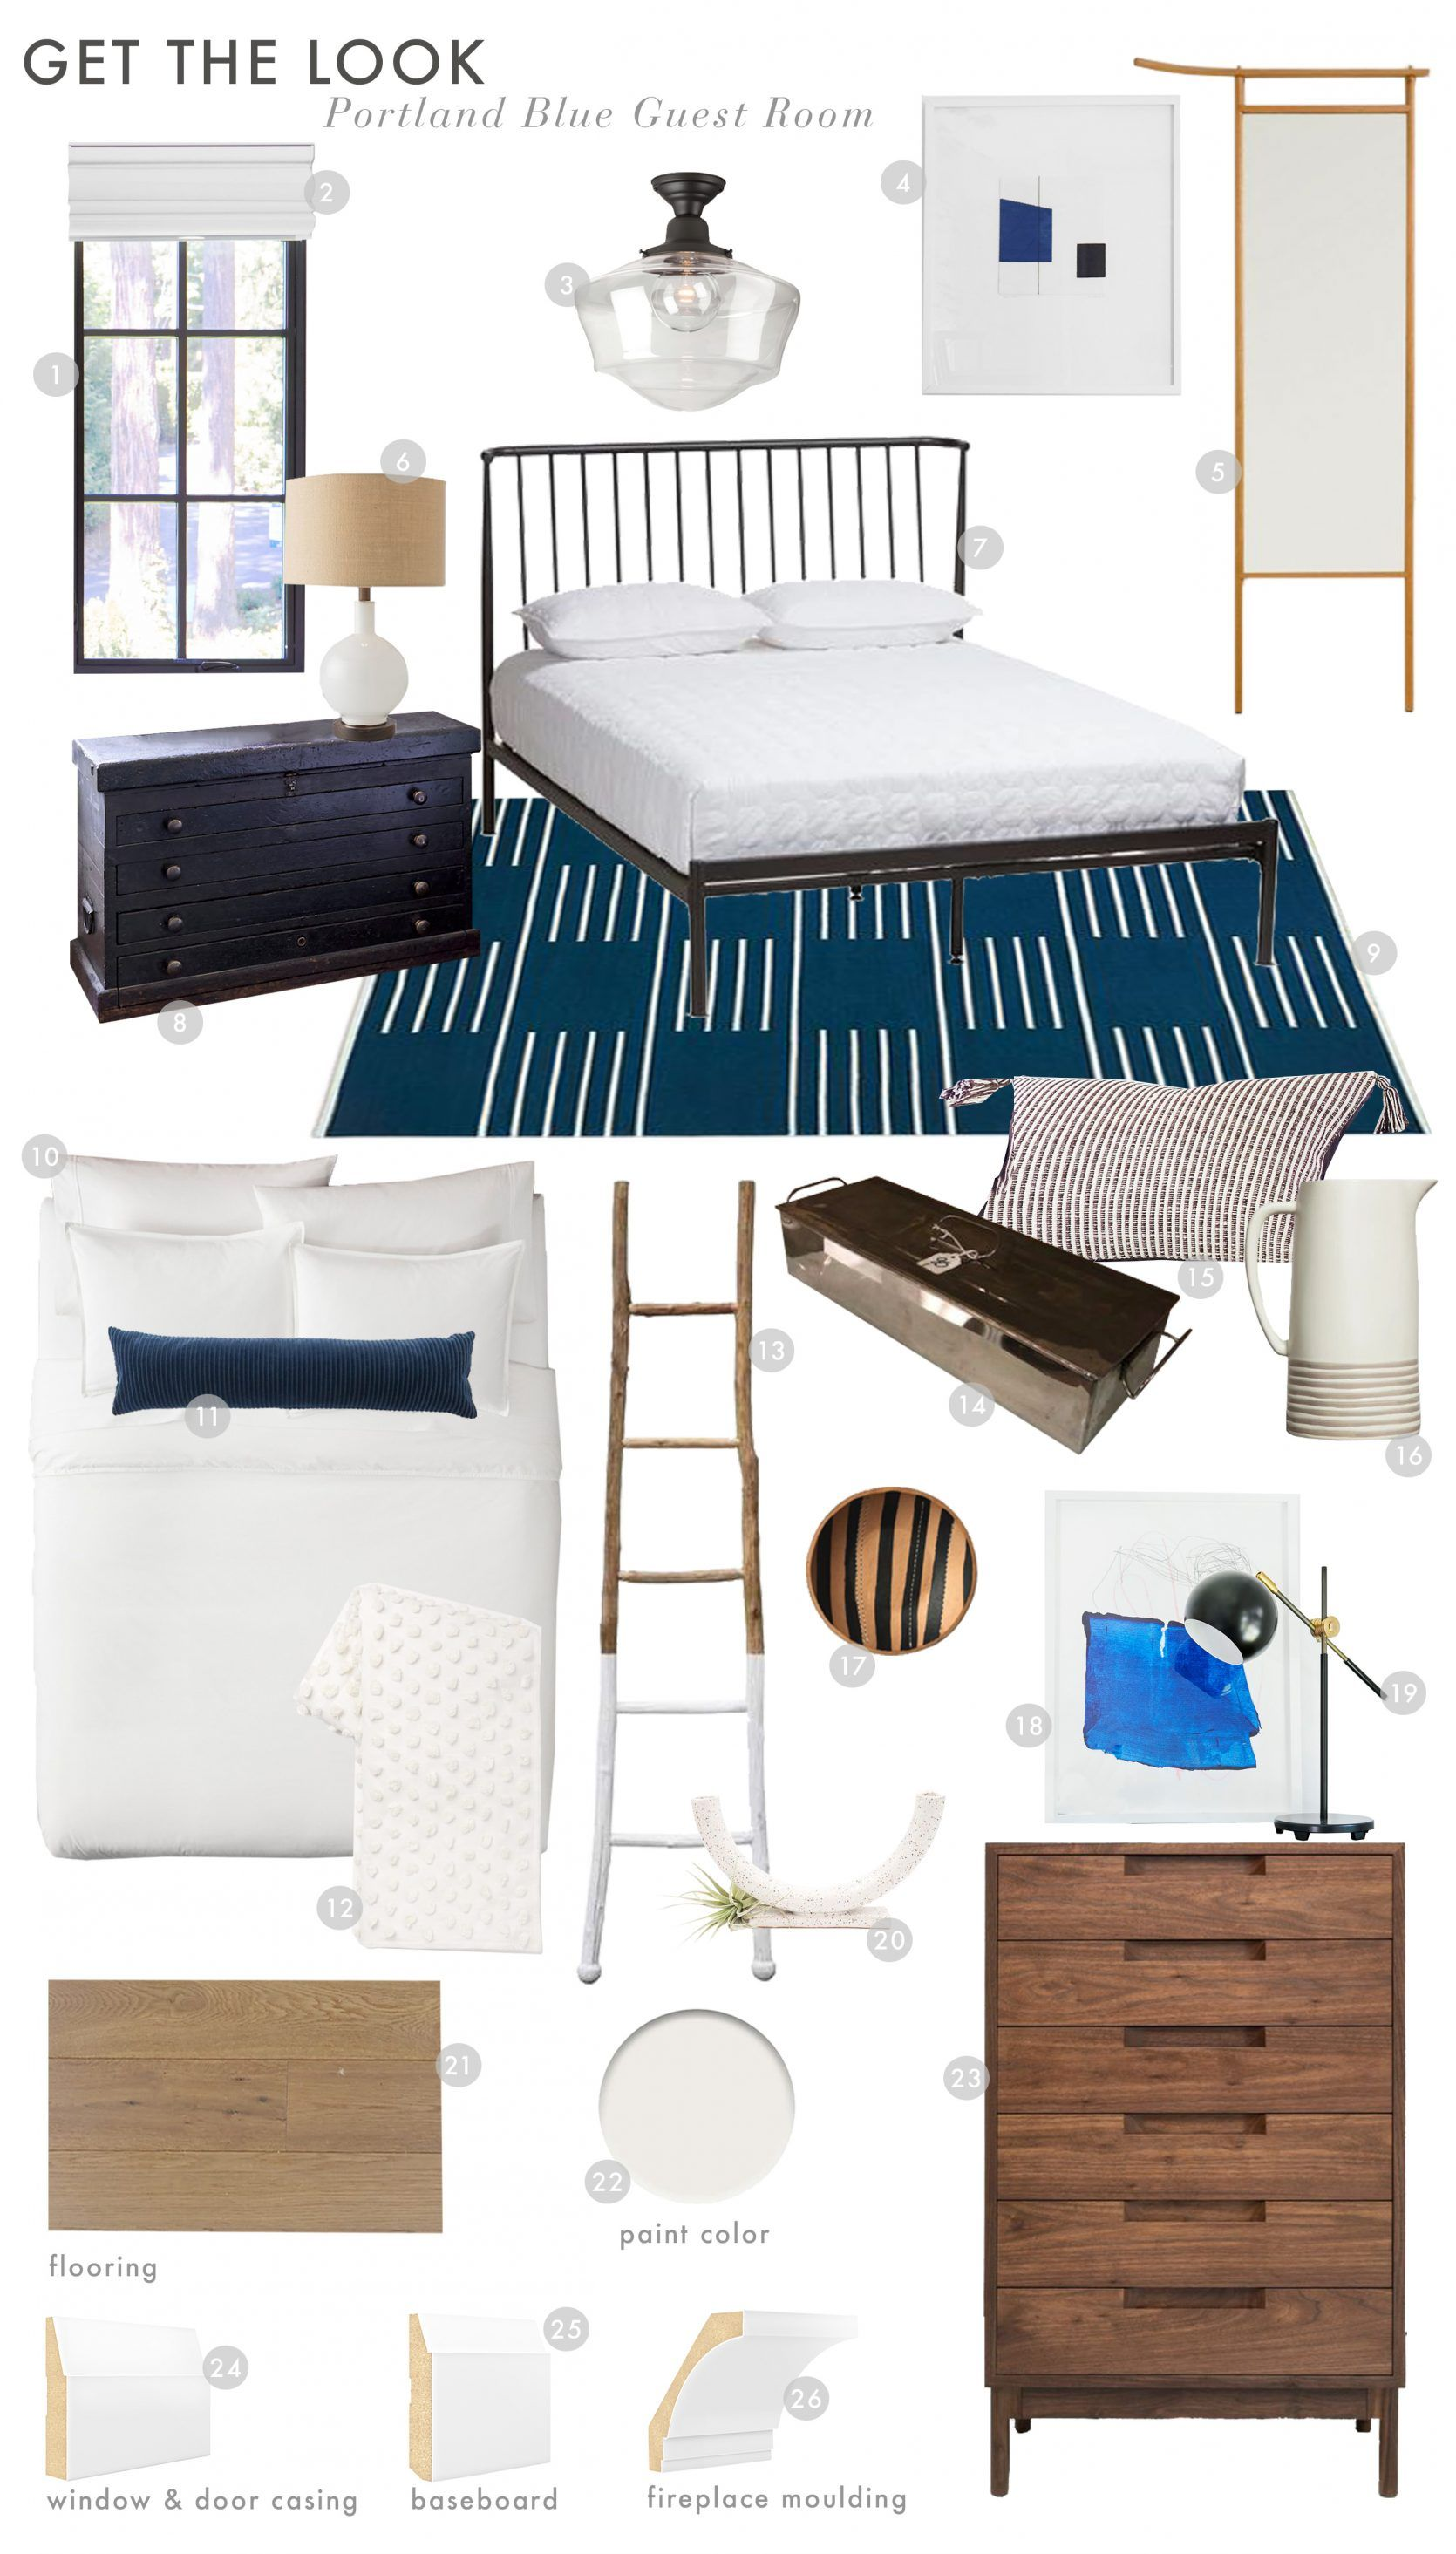 14 Rules To Follow To Design Style The Perfect Bedroom Romantic Bedroom Decor Guest Room Decor Guest Room Paint